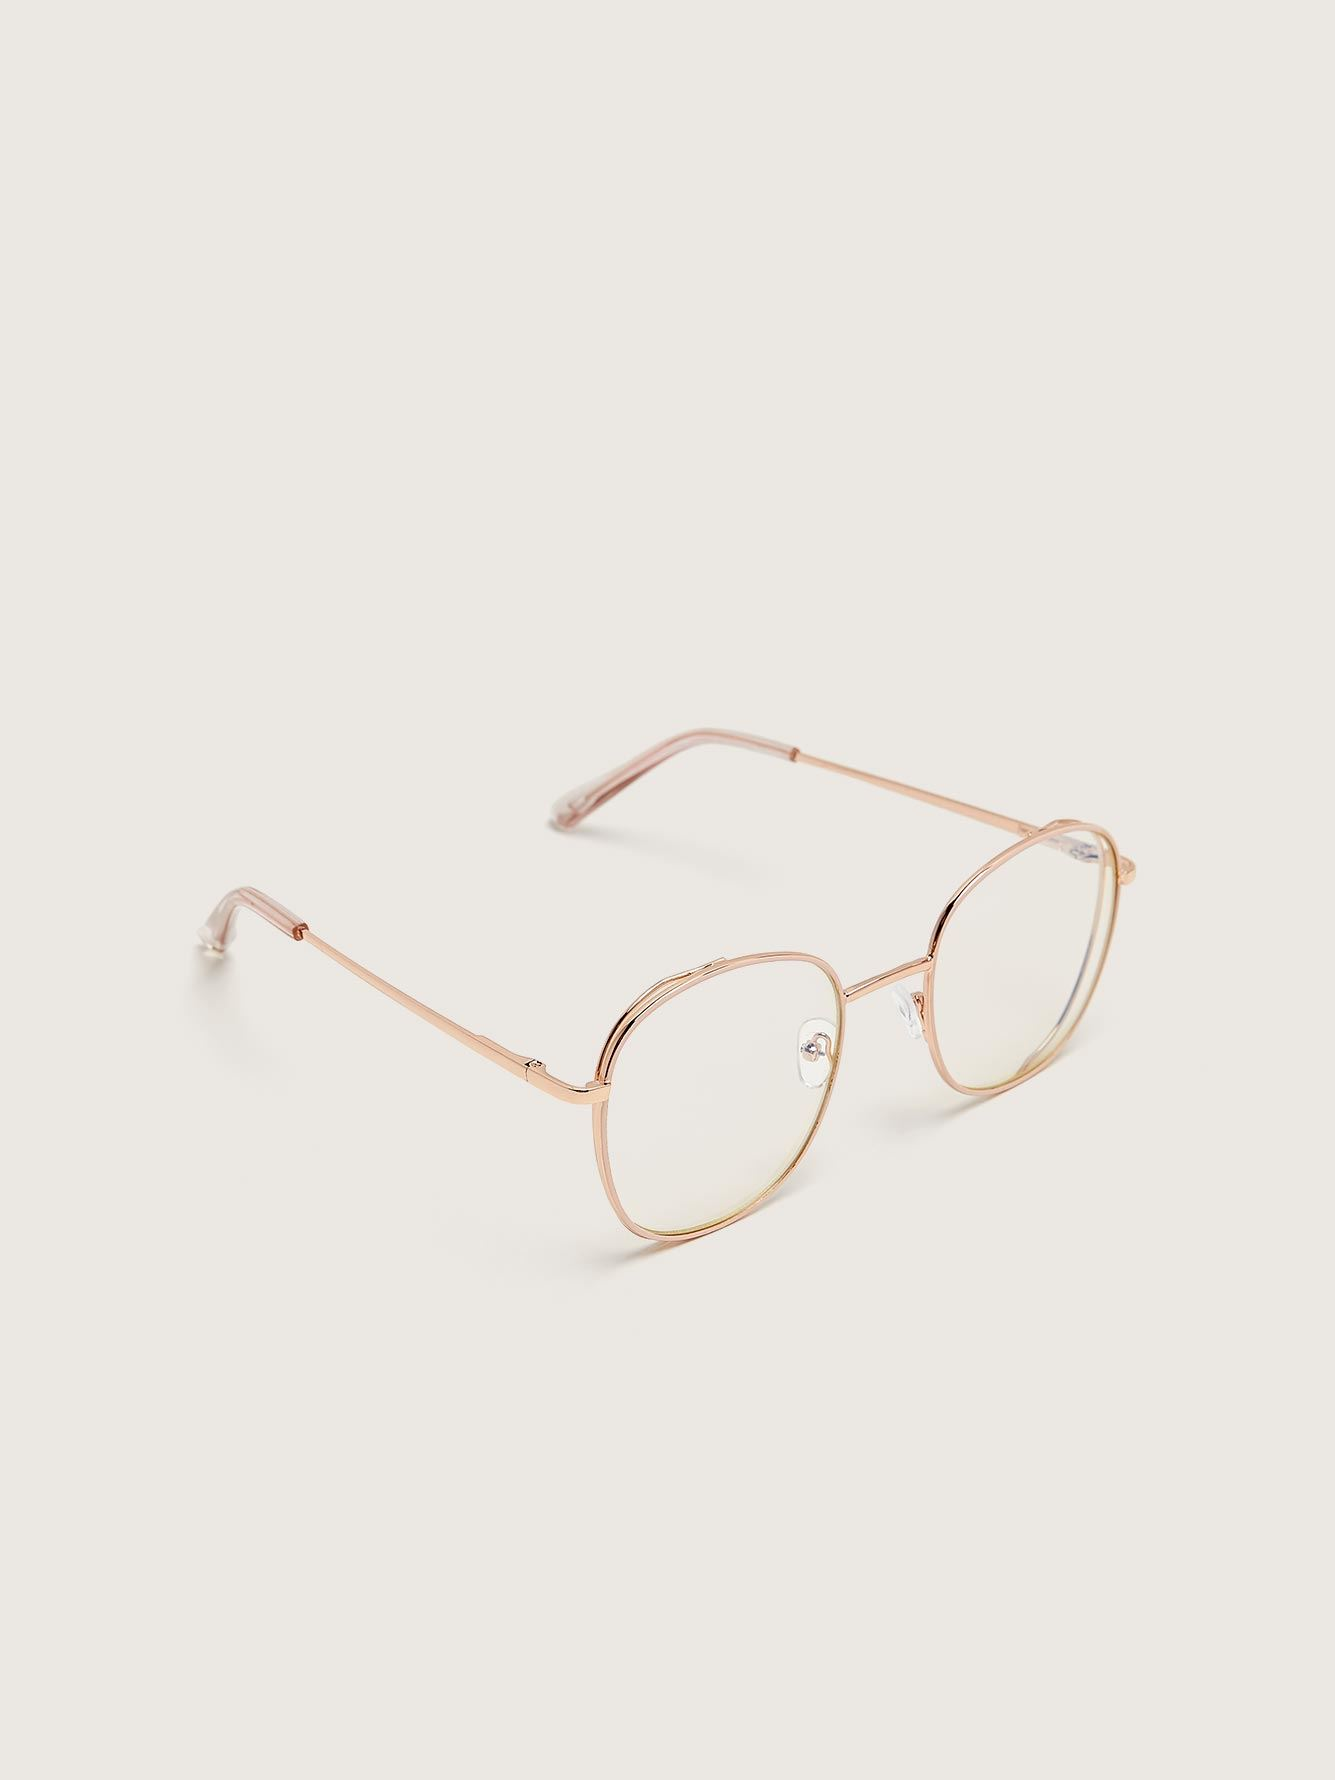 Blue Lens Aviator Glasses - Addition Elle